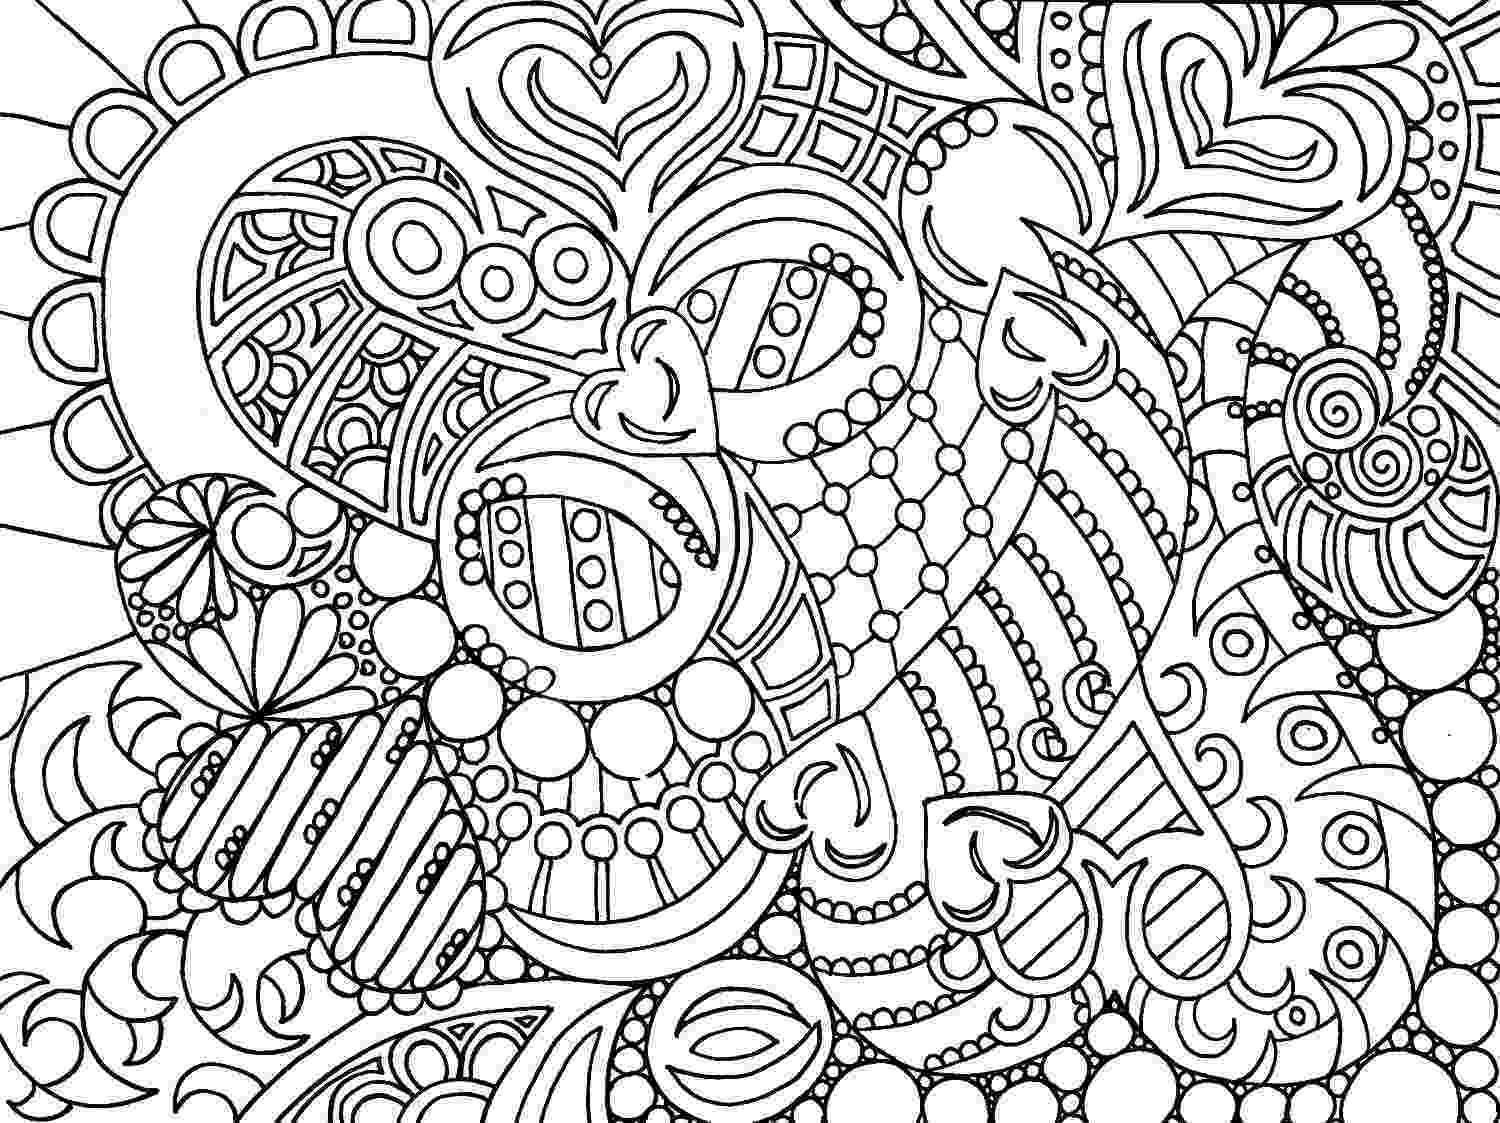 abstract art coloring pages coloring sheet for kids coloring pages blog pages abstract coloring art